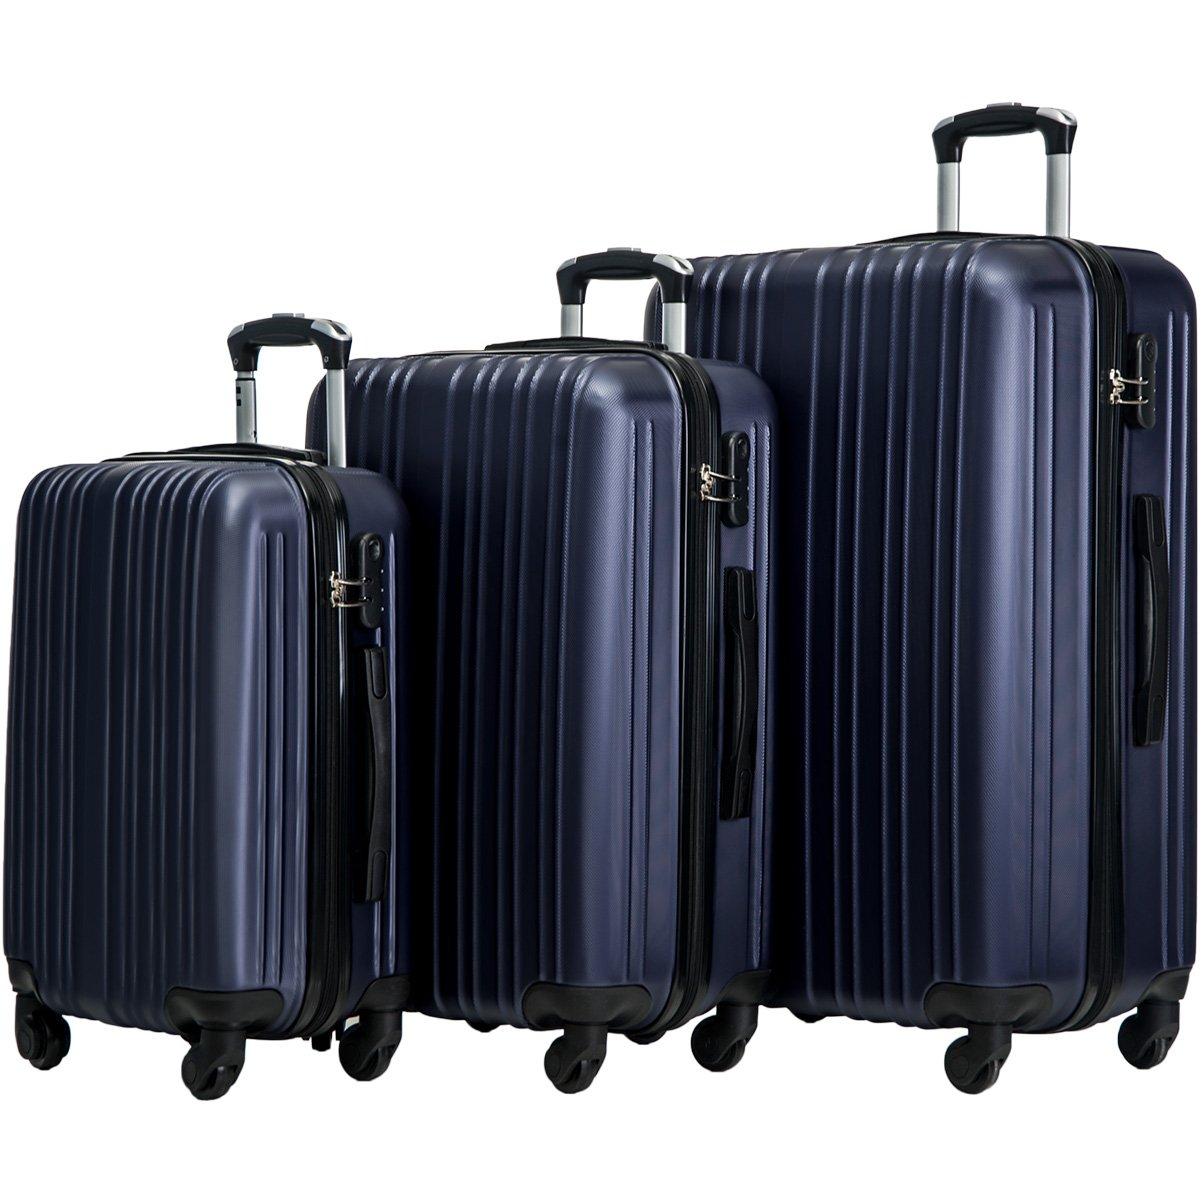 Merax Buris 3 Piece Luggage Set Lightweight Spinner Suitcase 20 24 28 (Deep Blue) by Merax